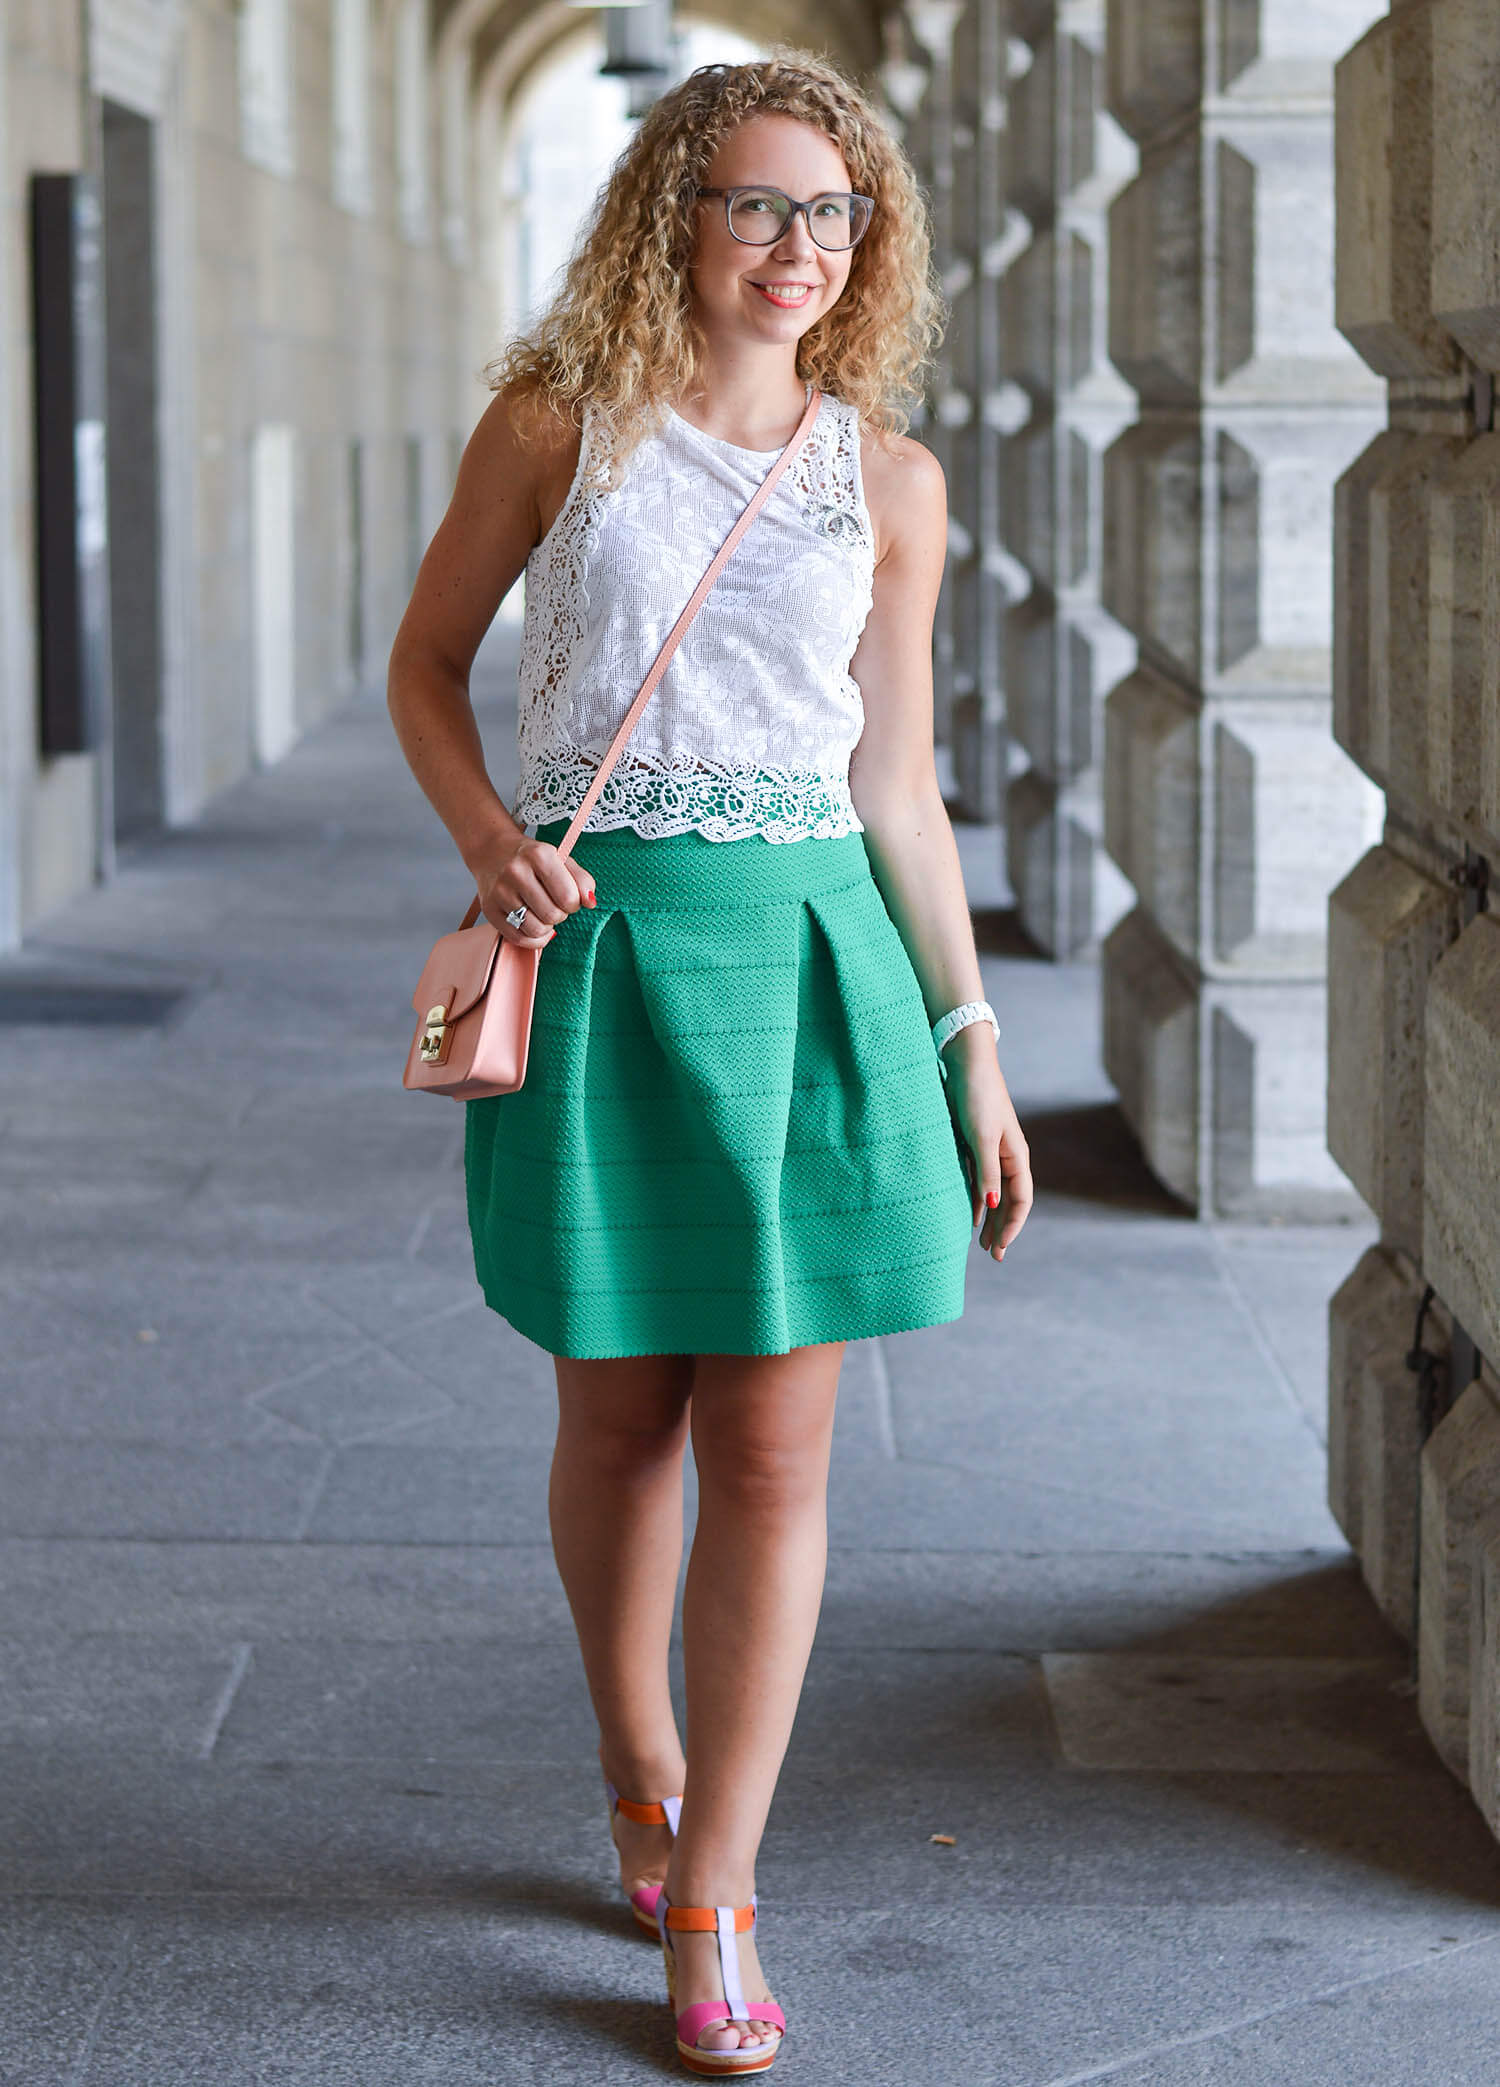 Kationette-fashionblog-nrw-Outfit-White-lace-top-zara-and-Green-flared-skirt-hm-furla-chanel